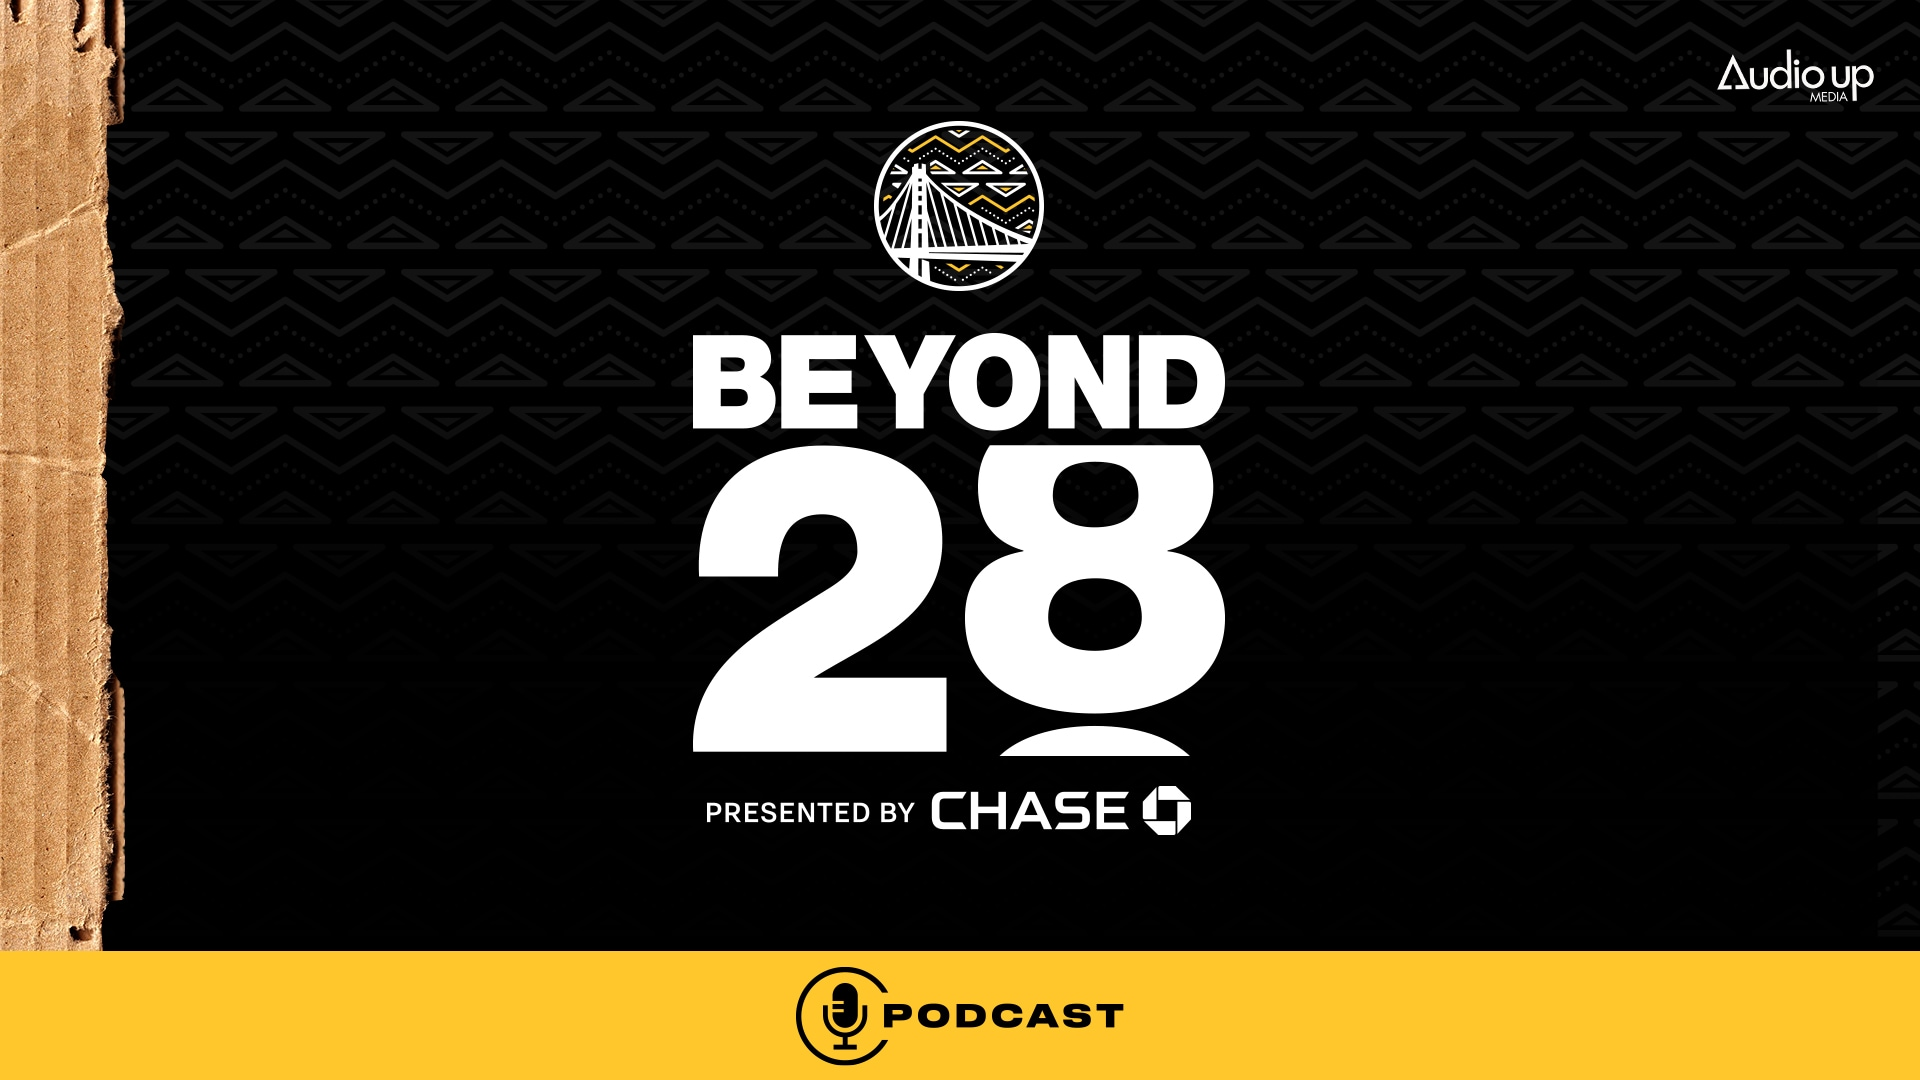 Warriors and Chase Launch Beyond28 Podcast